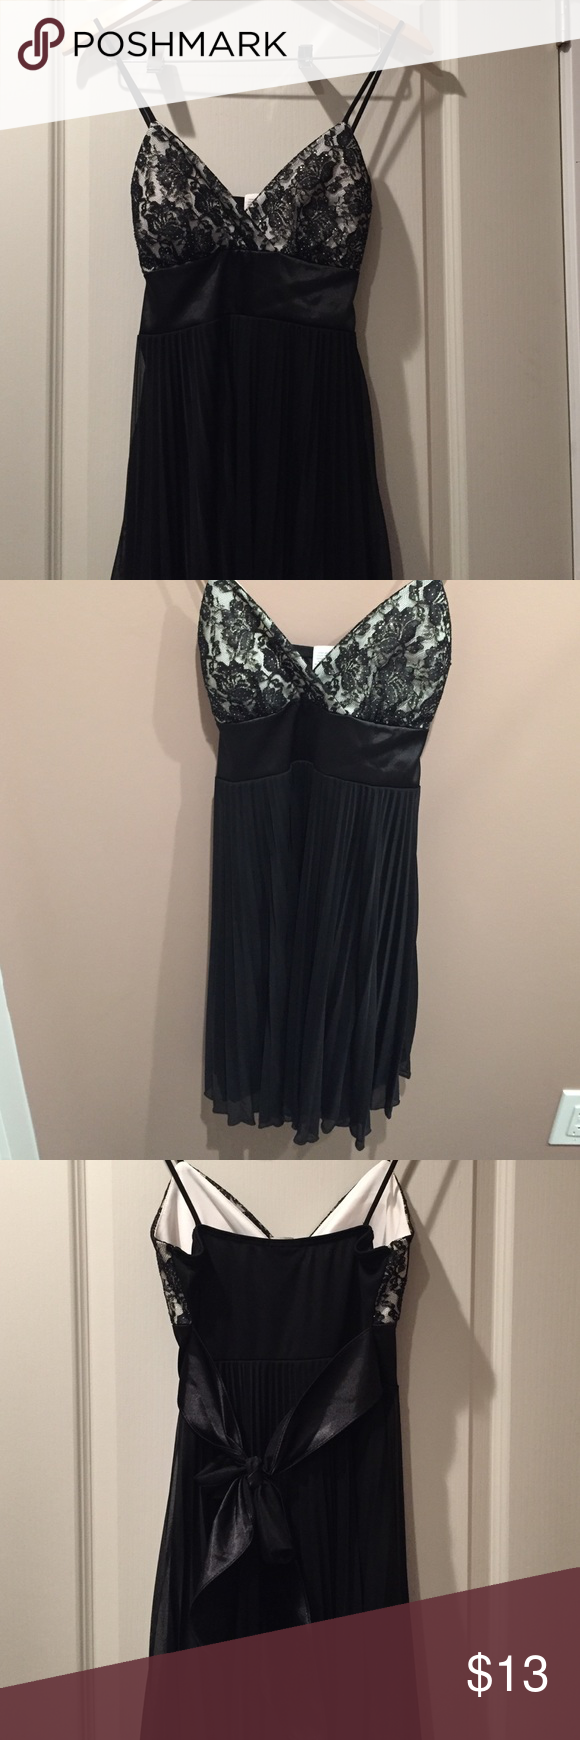 Little black dress with bow tie back Dress was worn once, has a bow tie back and chiffon overlay. Top is V drop with black lace floral design and spaghetti strap, fits true to a medium and top provides good coverage for B to A cup Dresses Midi